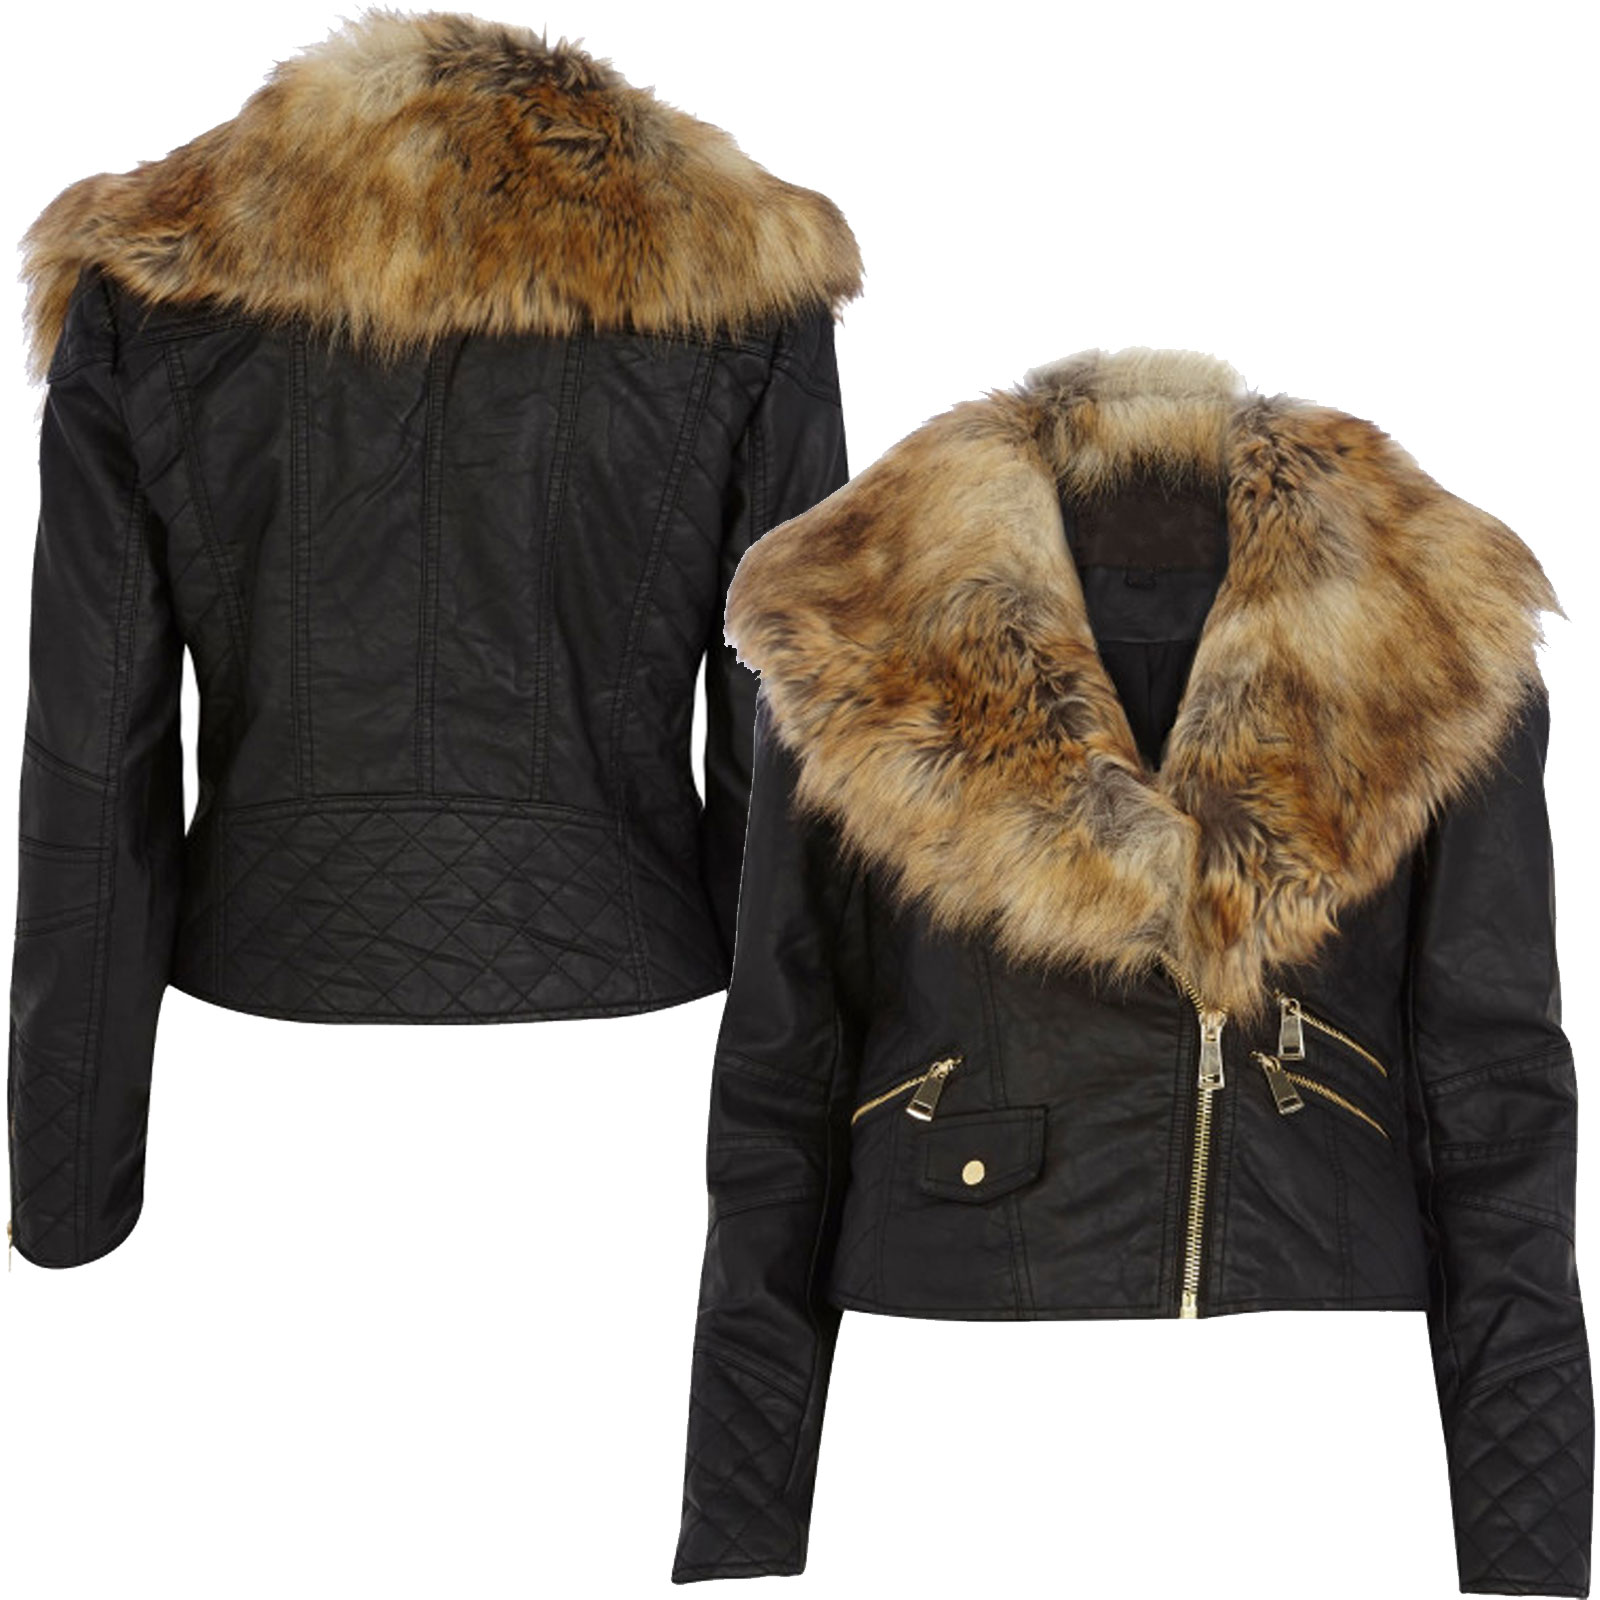 Ladies Coat With Fur Collar